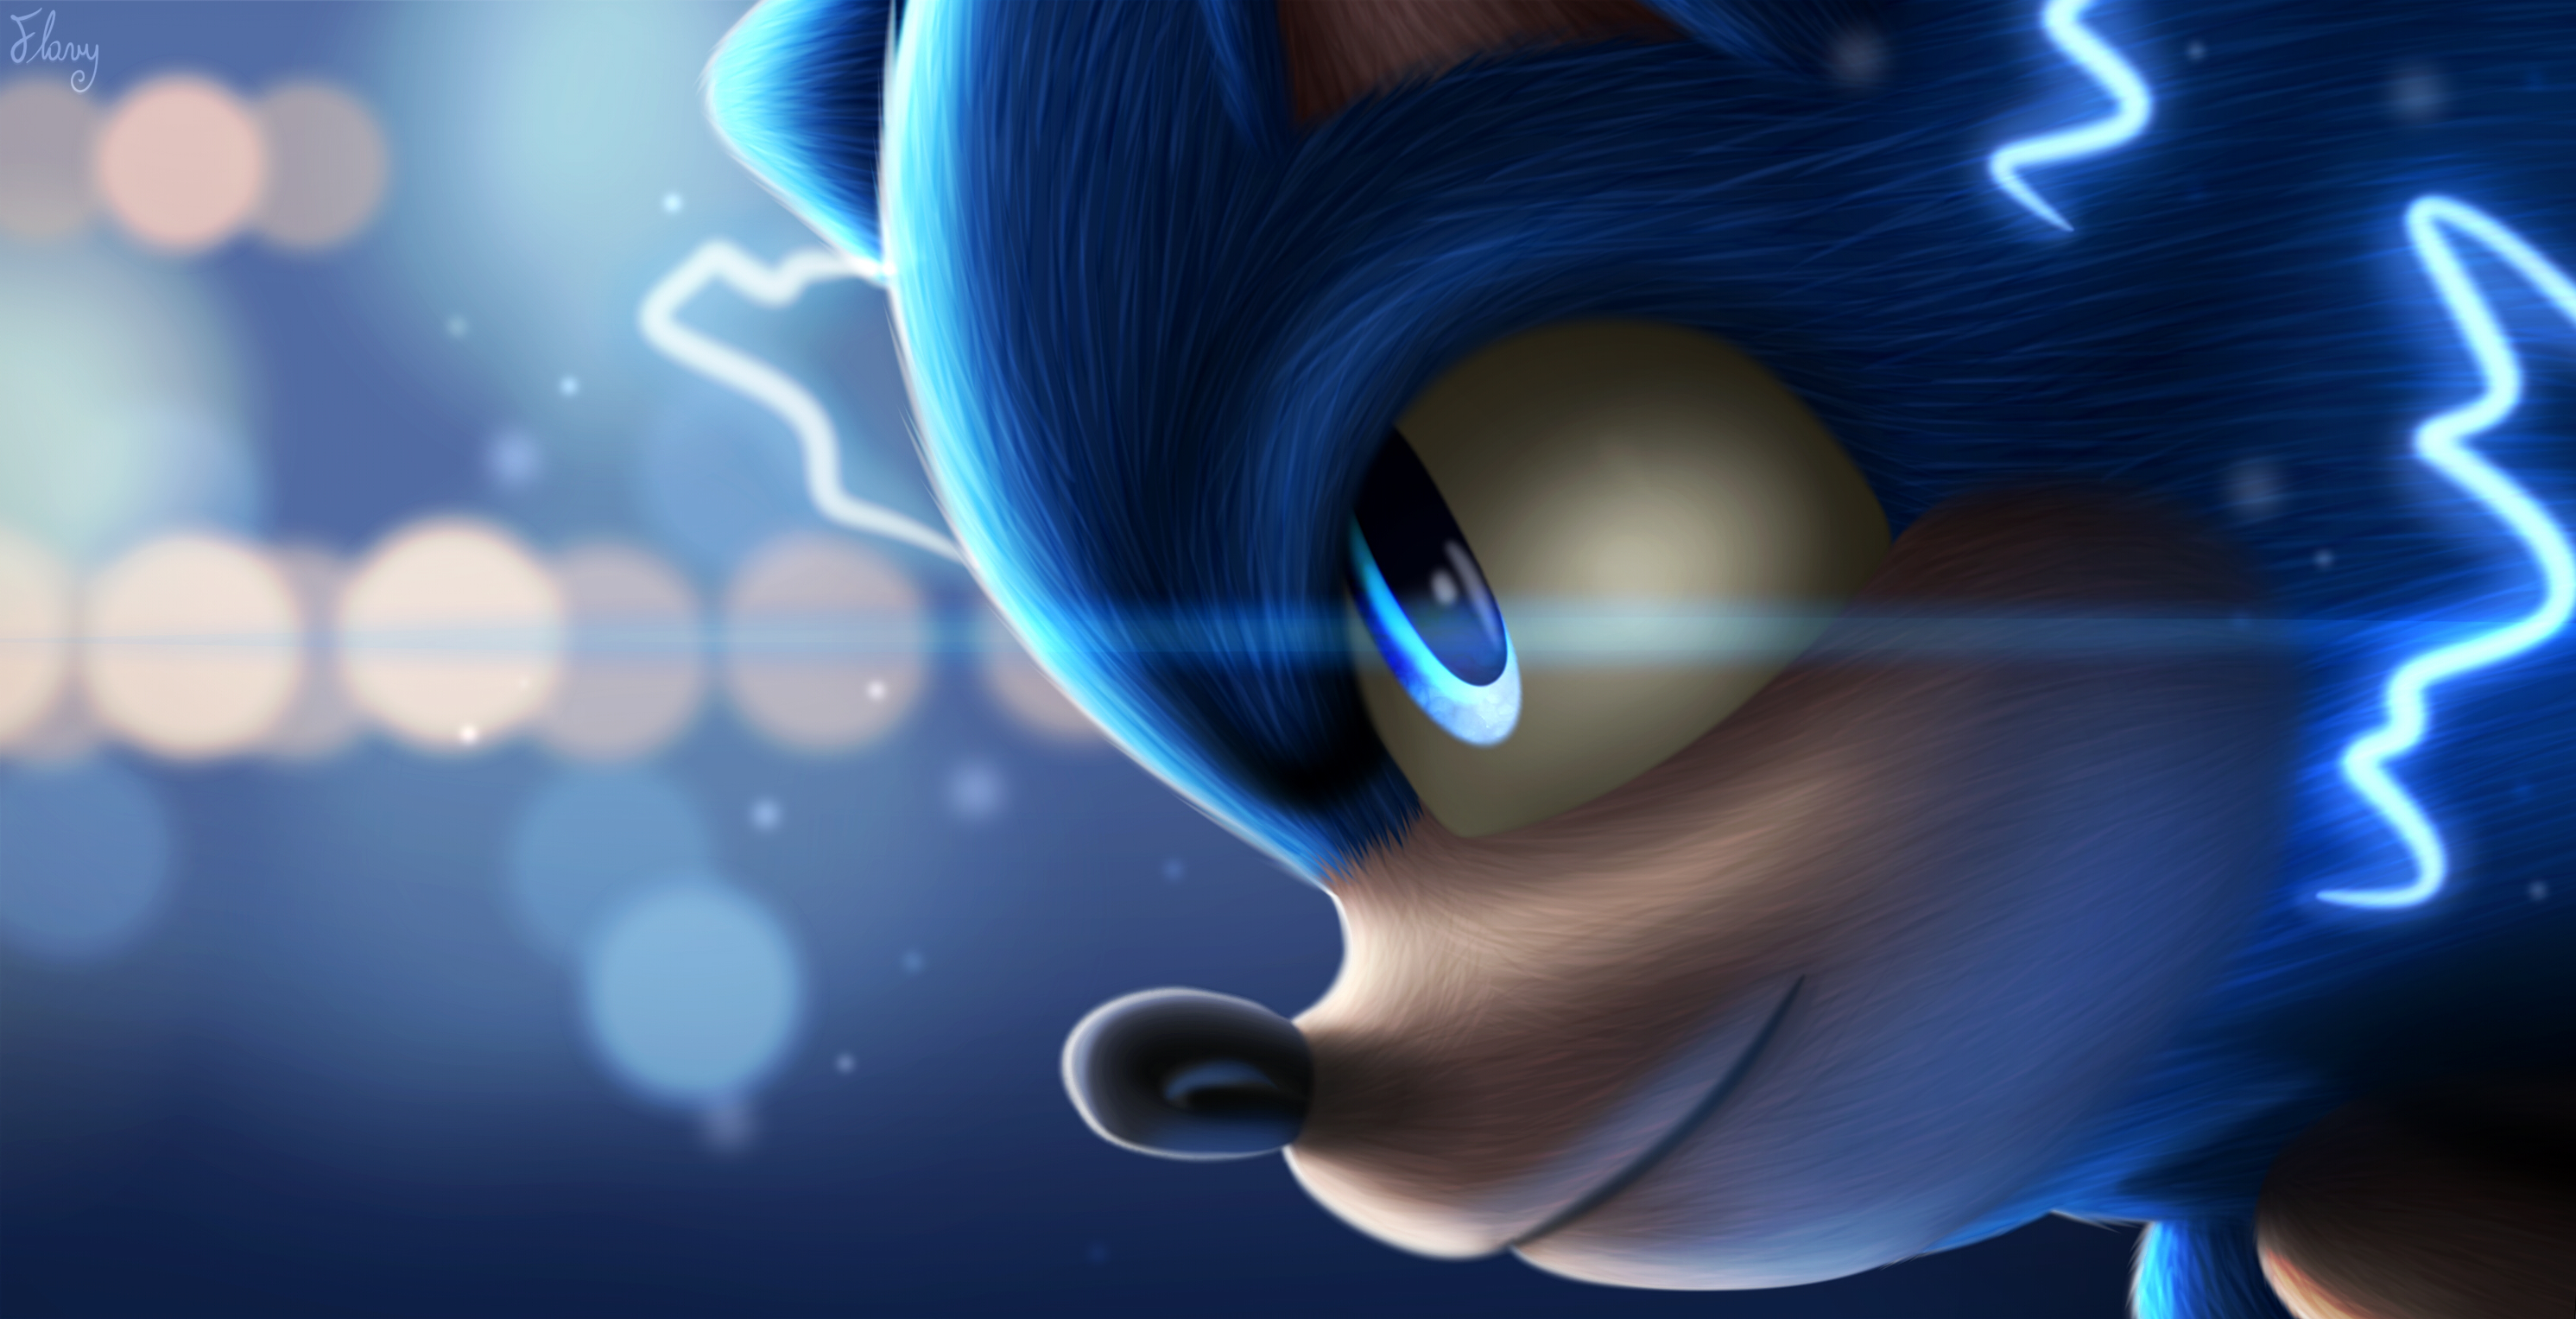 Sonic The Hedgehog Art Wallpaper Hd Movies 4k Wallpapers Images Photos And Background